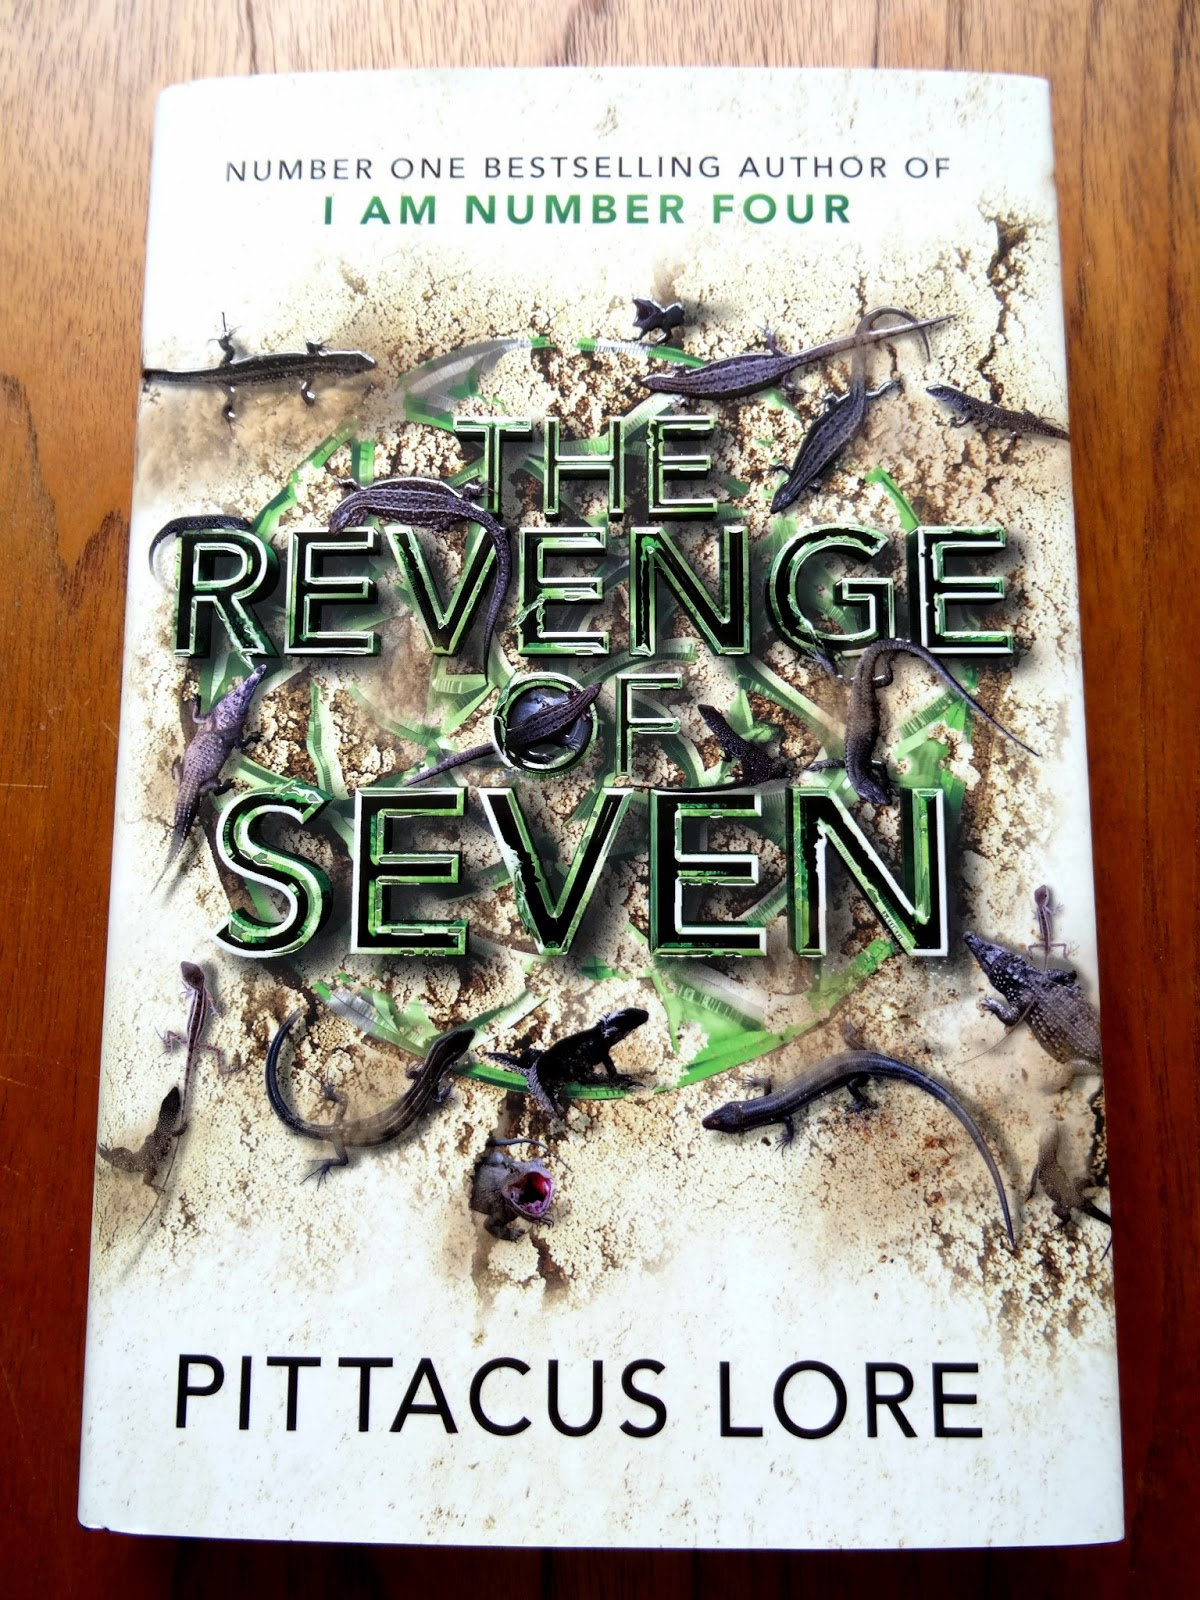 The Revenge of Seven review